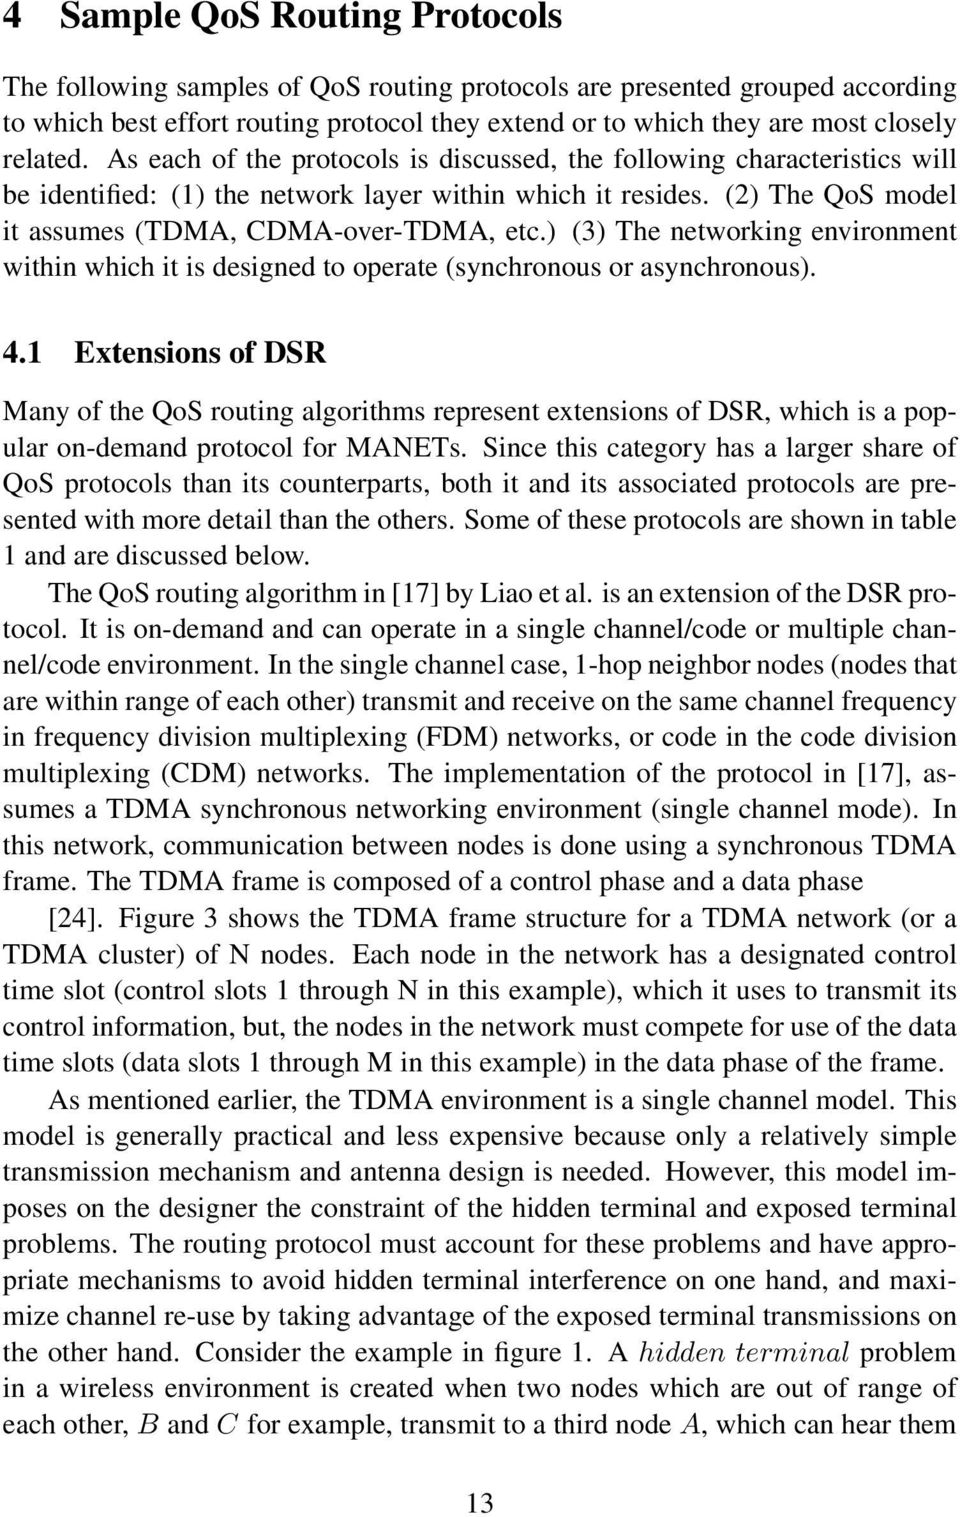 (2) The QoS model it assumes (TDMA, CDMA-over-TDMA, etc.) (3) The networking environment within which it is designed to operate (synchronous or asynchronous). 4.